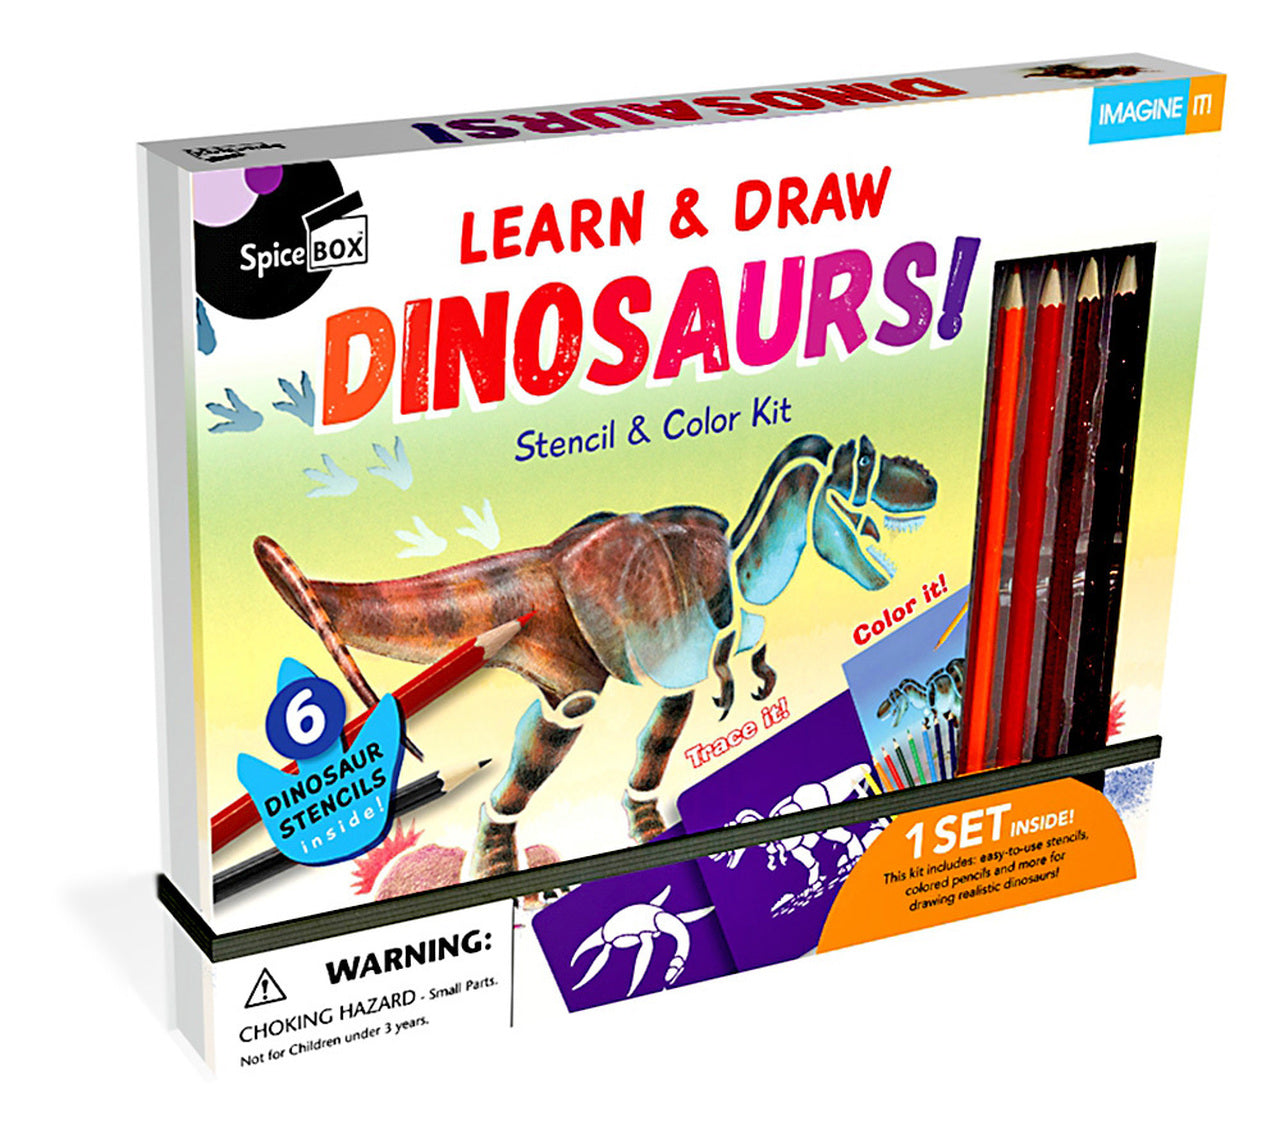 Learn & Draw Dinosaurs